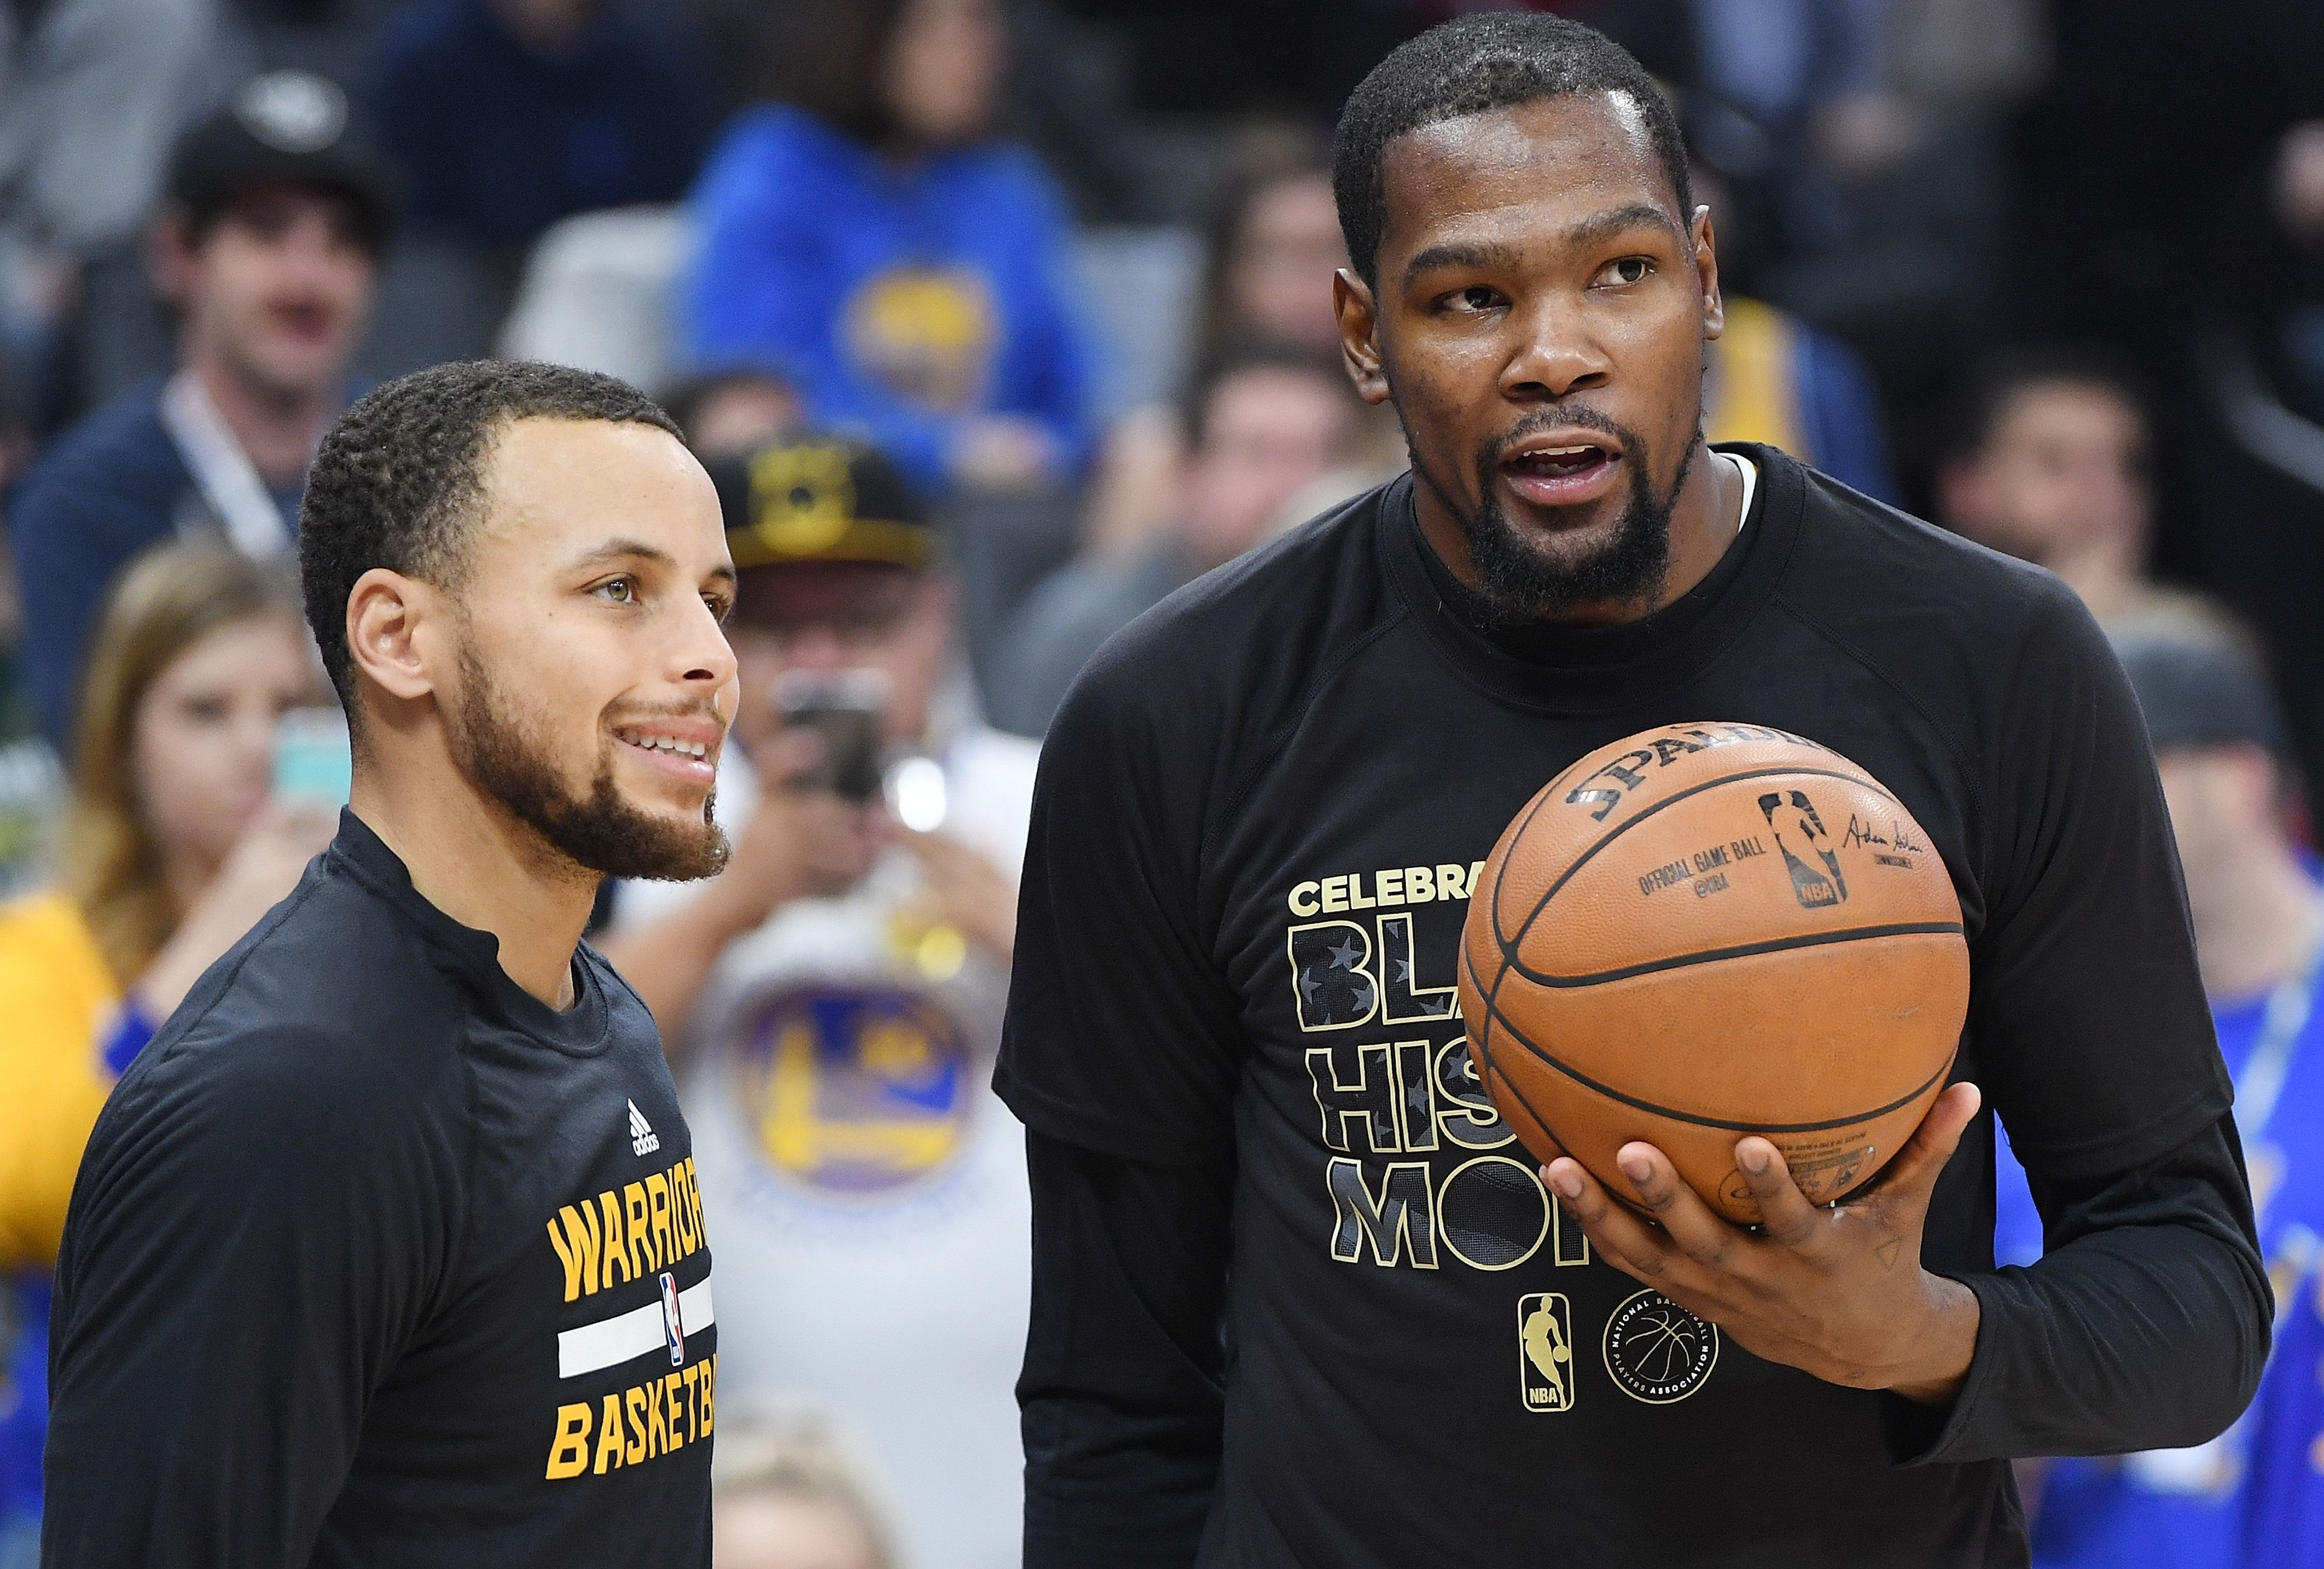 SACRAMENTO, CA - FEBRUARY 04:  Stephan Curry #30 (L) and Kevin Durant #35 (R) of the Golden State Warriors talks with each other during warm ups prior to the start of an NBA basketball game against the Sacramento Kings at Golden 1 Center on February 4, 2017 in Sacramento, California. NOTE TO USER: User expressly acknowledges and agrees that, by downloading and or using this photograph, User is consenting to the terms and conditions of the Getty Images License Agreement.  (Photo by Thearon W. Henderson/Getty Images)